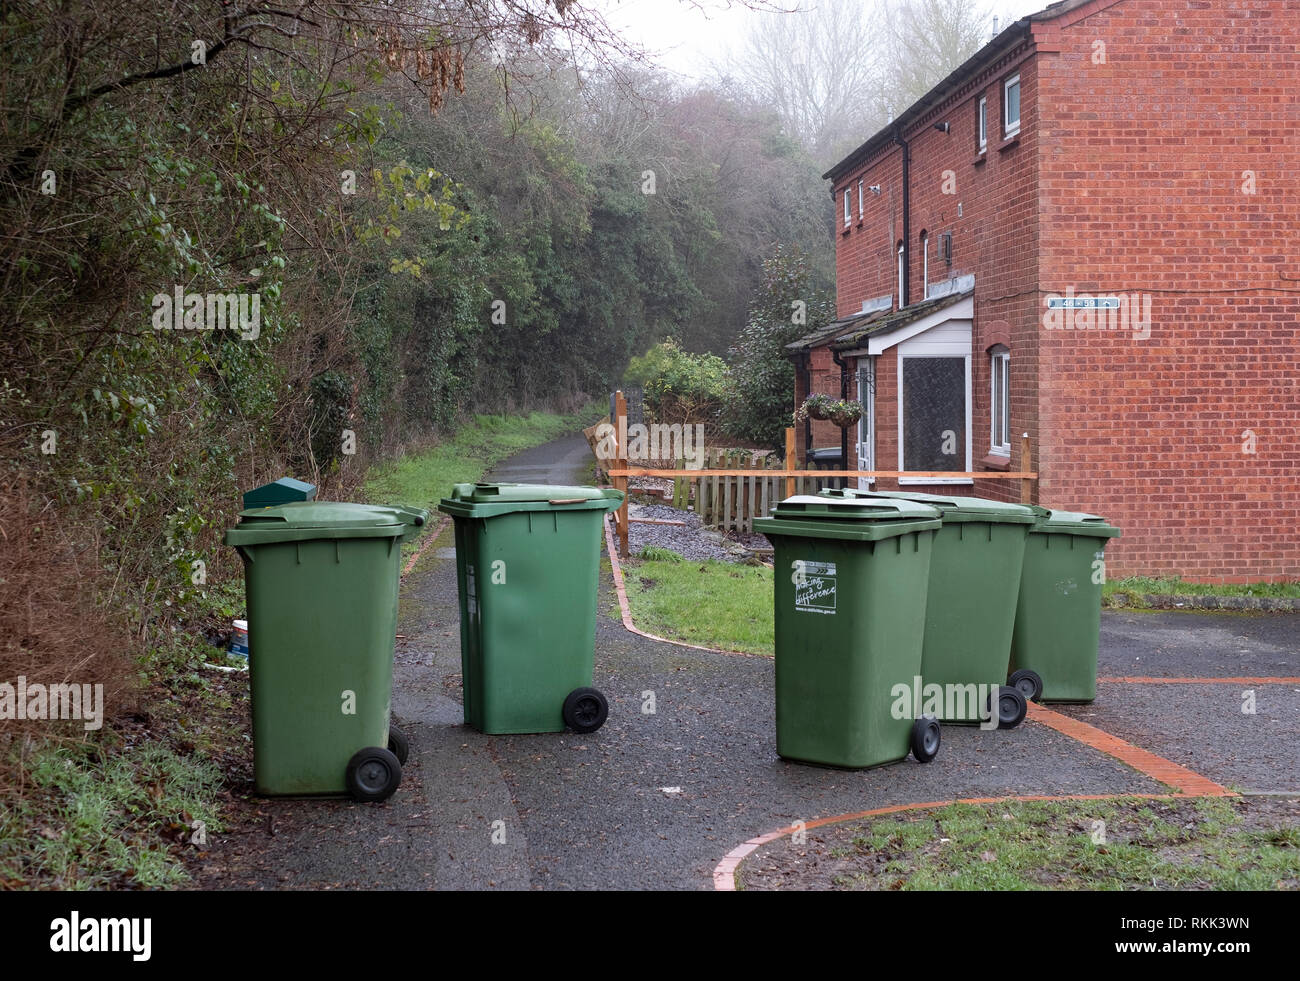 Bin day.  Domestic green recycling bins out for collection on a housing estate in Worcestershire, UK. Stock Photo